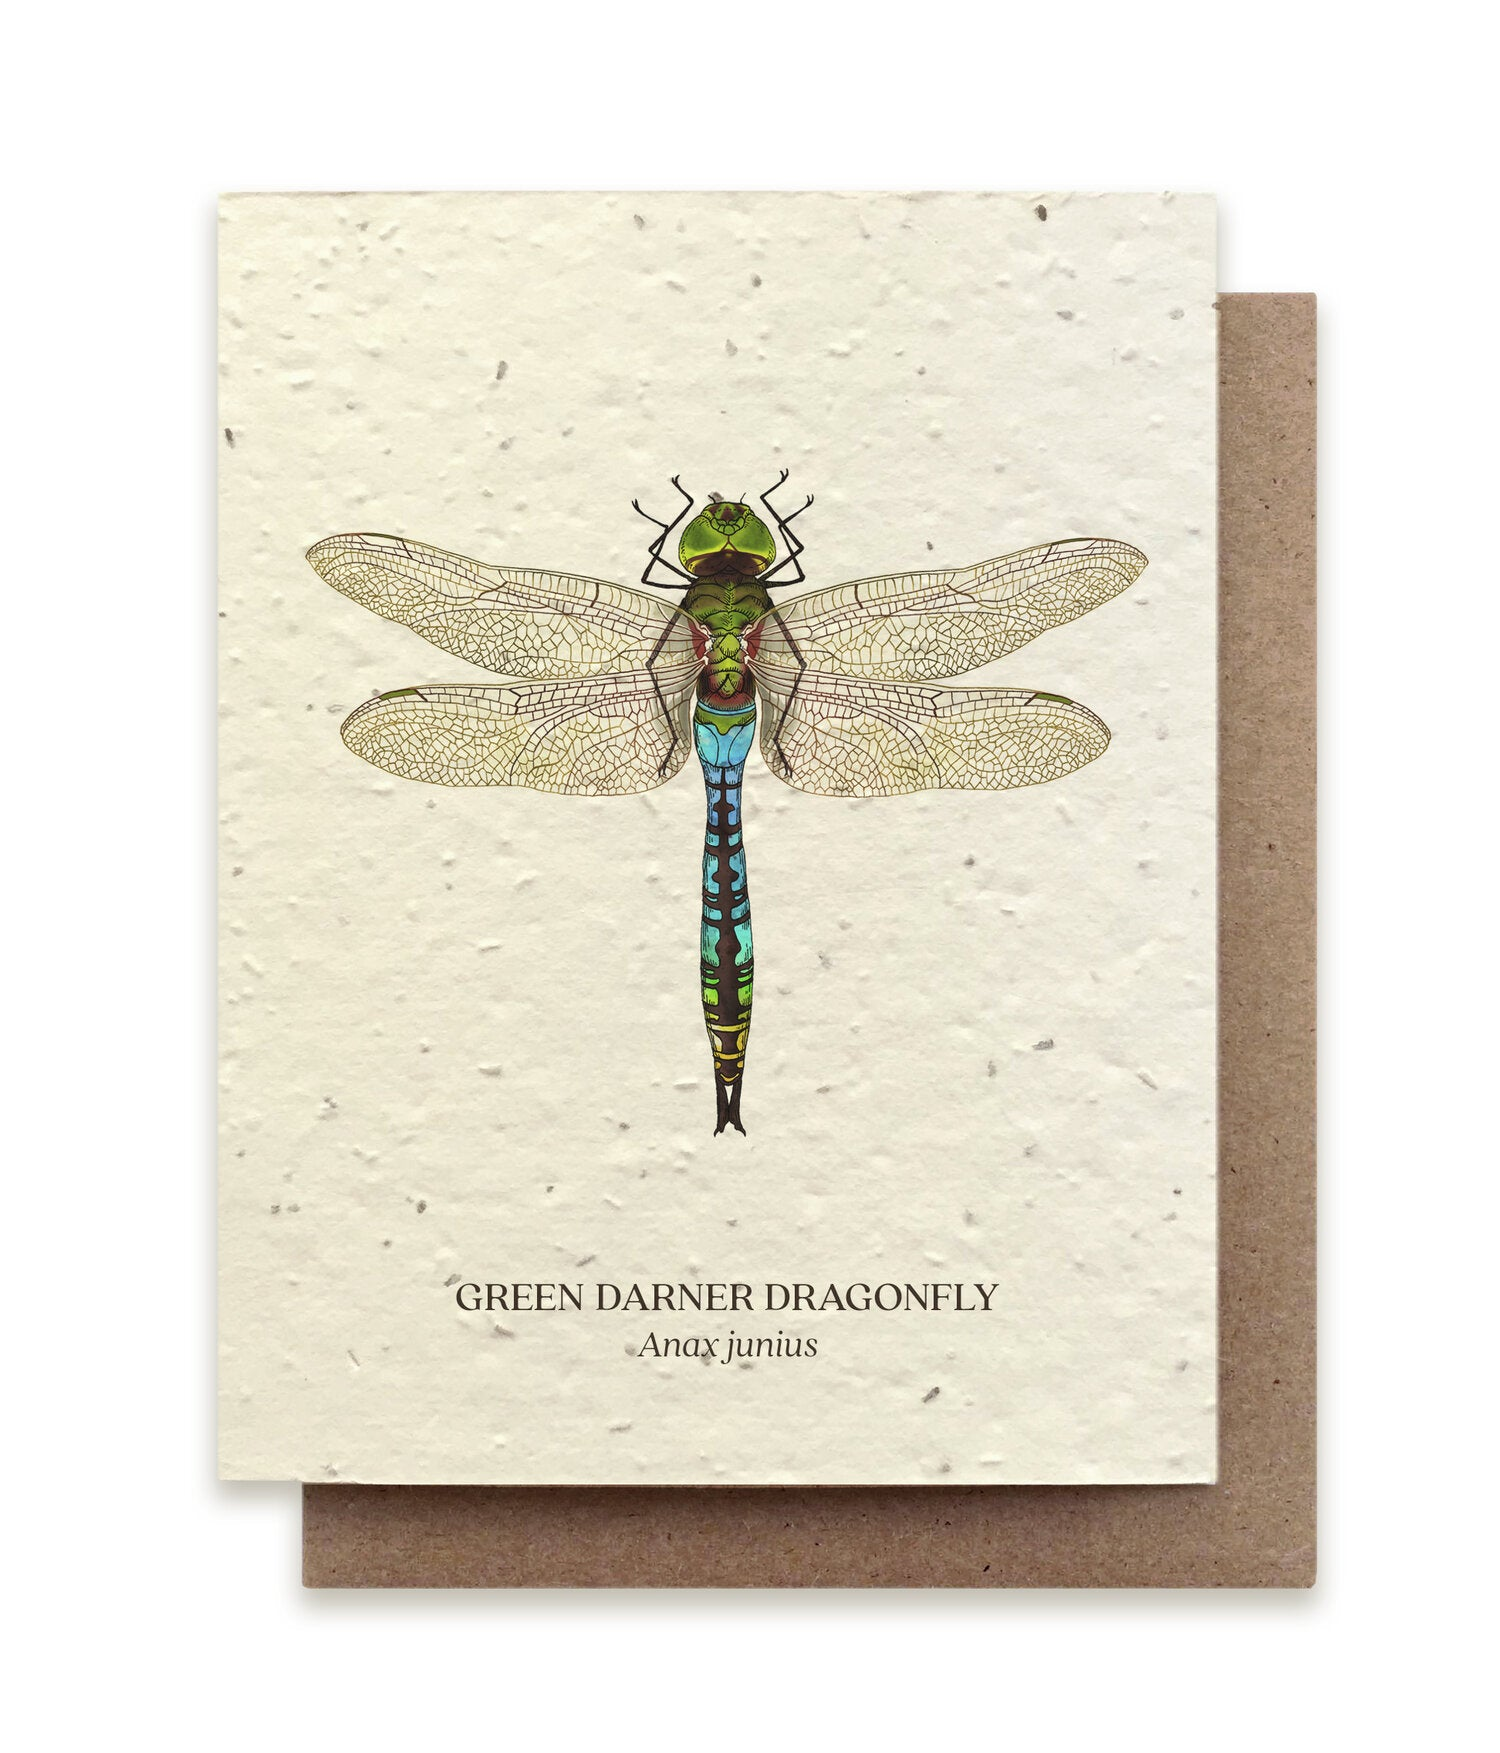 Freen darner dragonfly plantable card